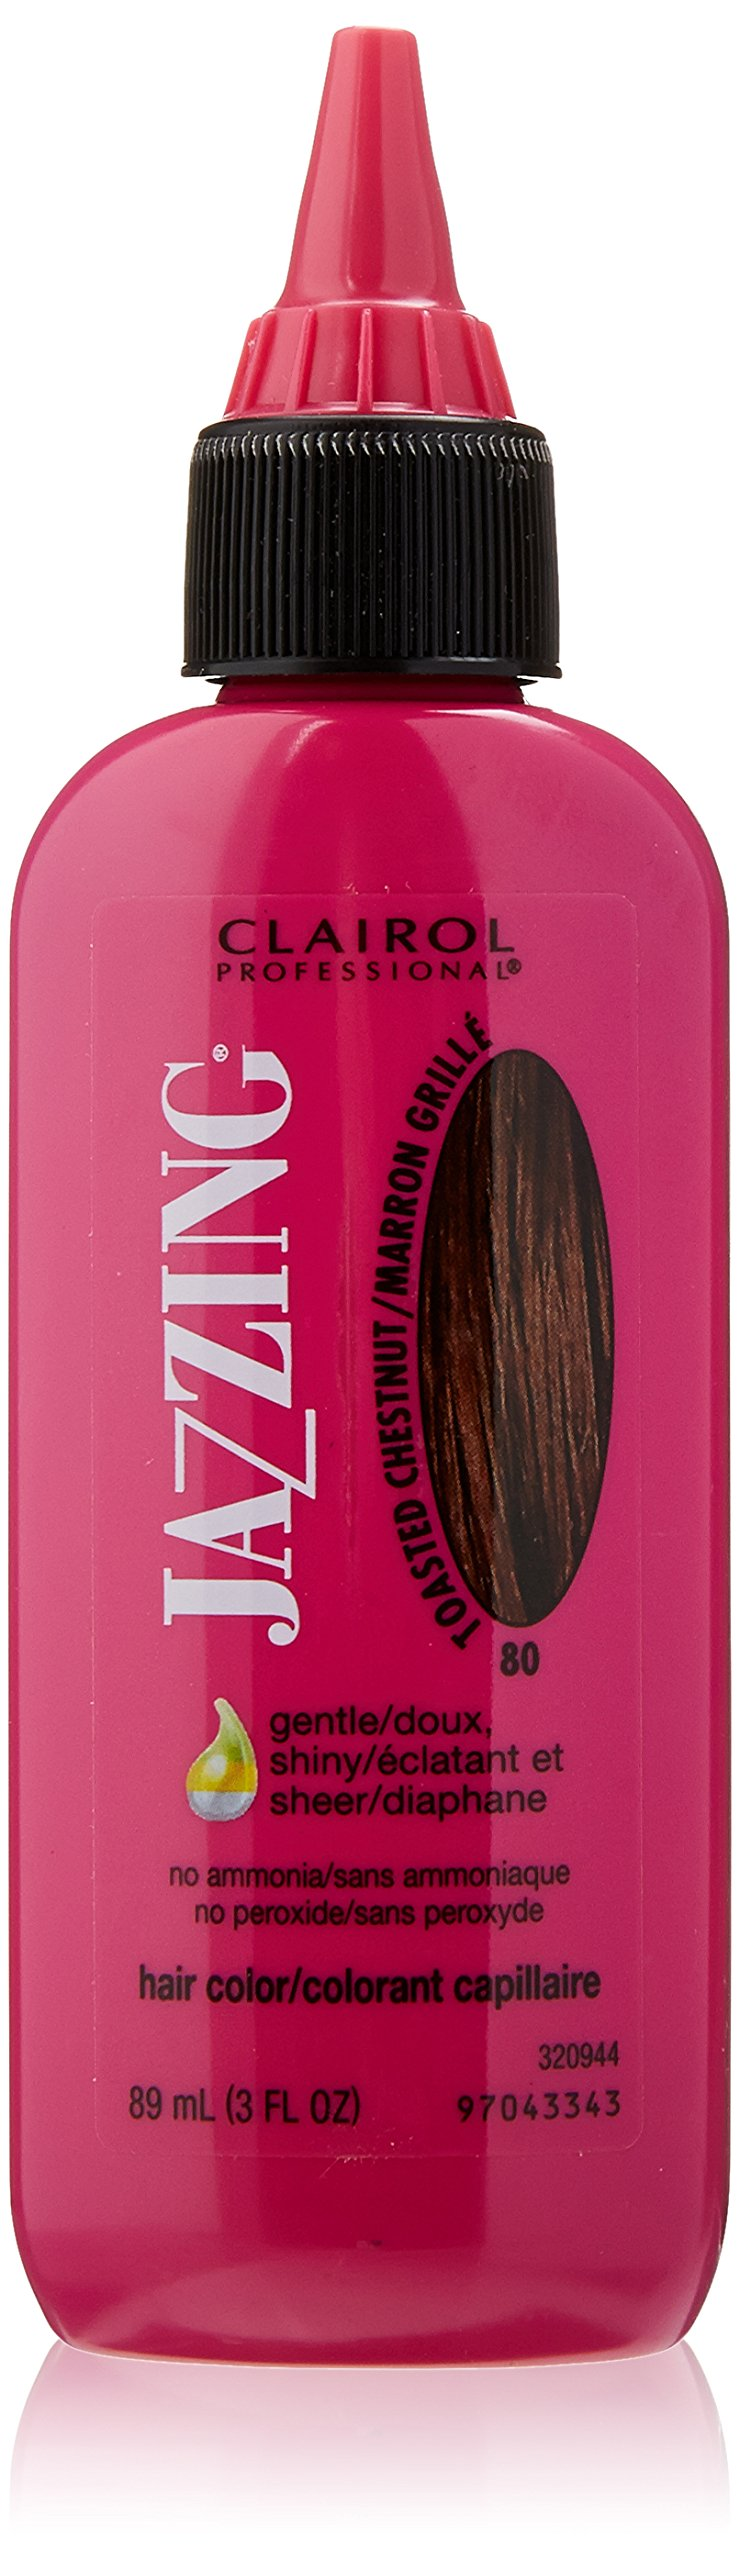 Amazon Clairol Professional Jazzing Temporary Hair Color